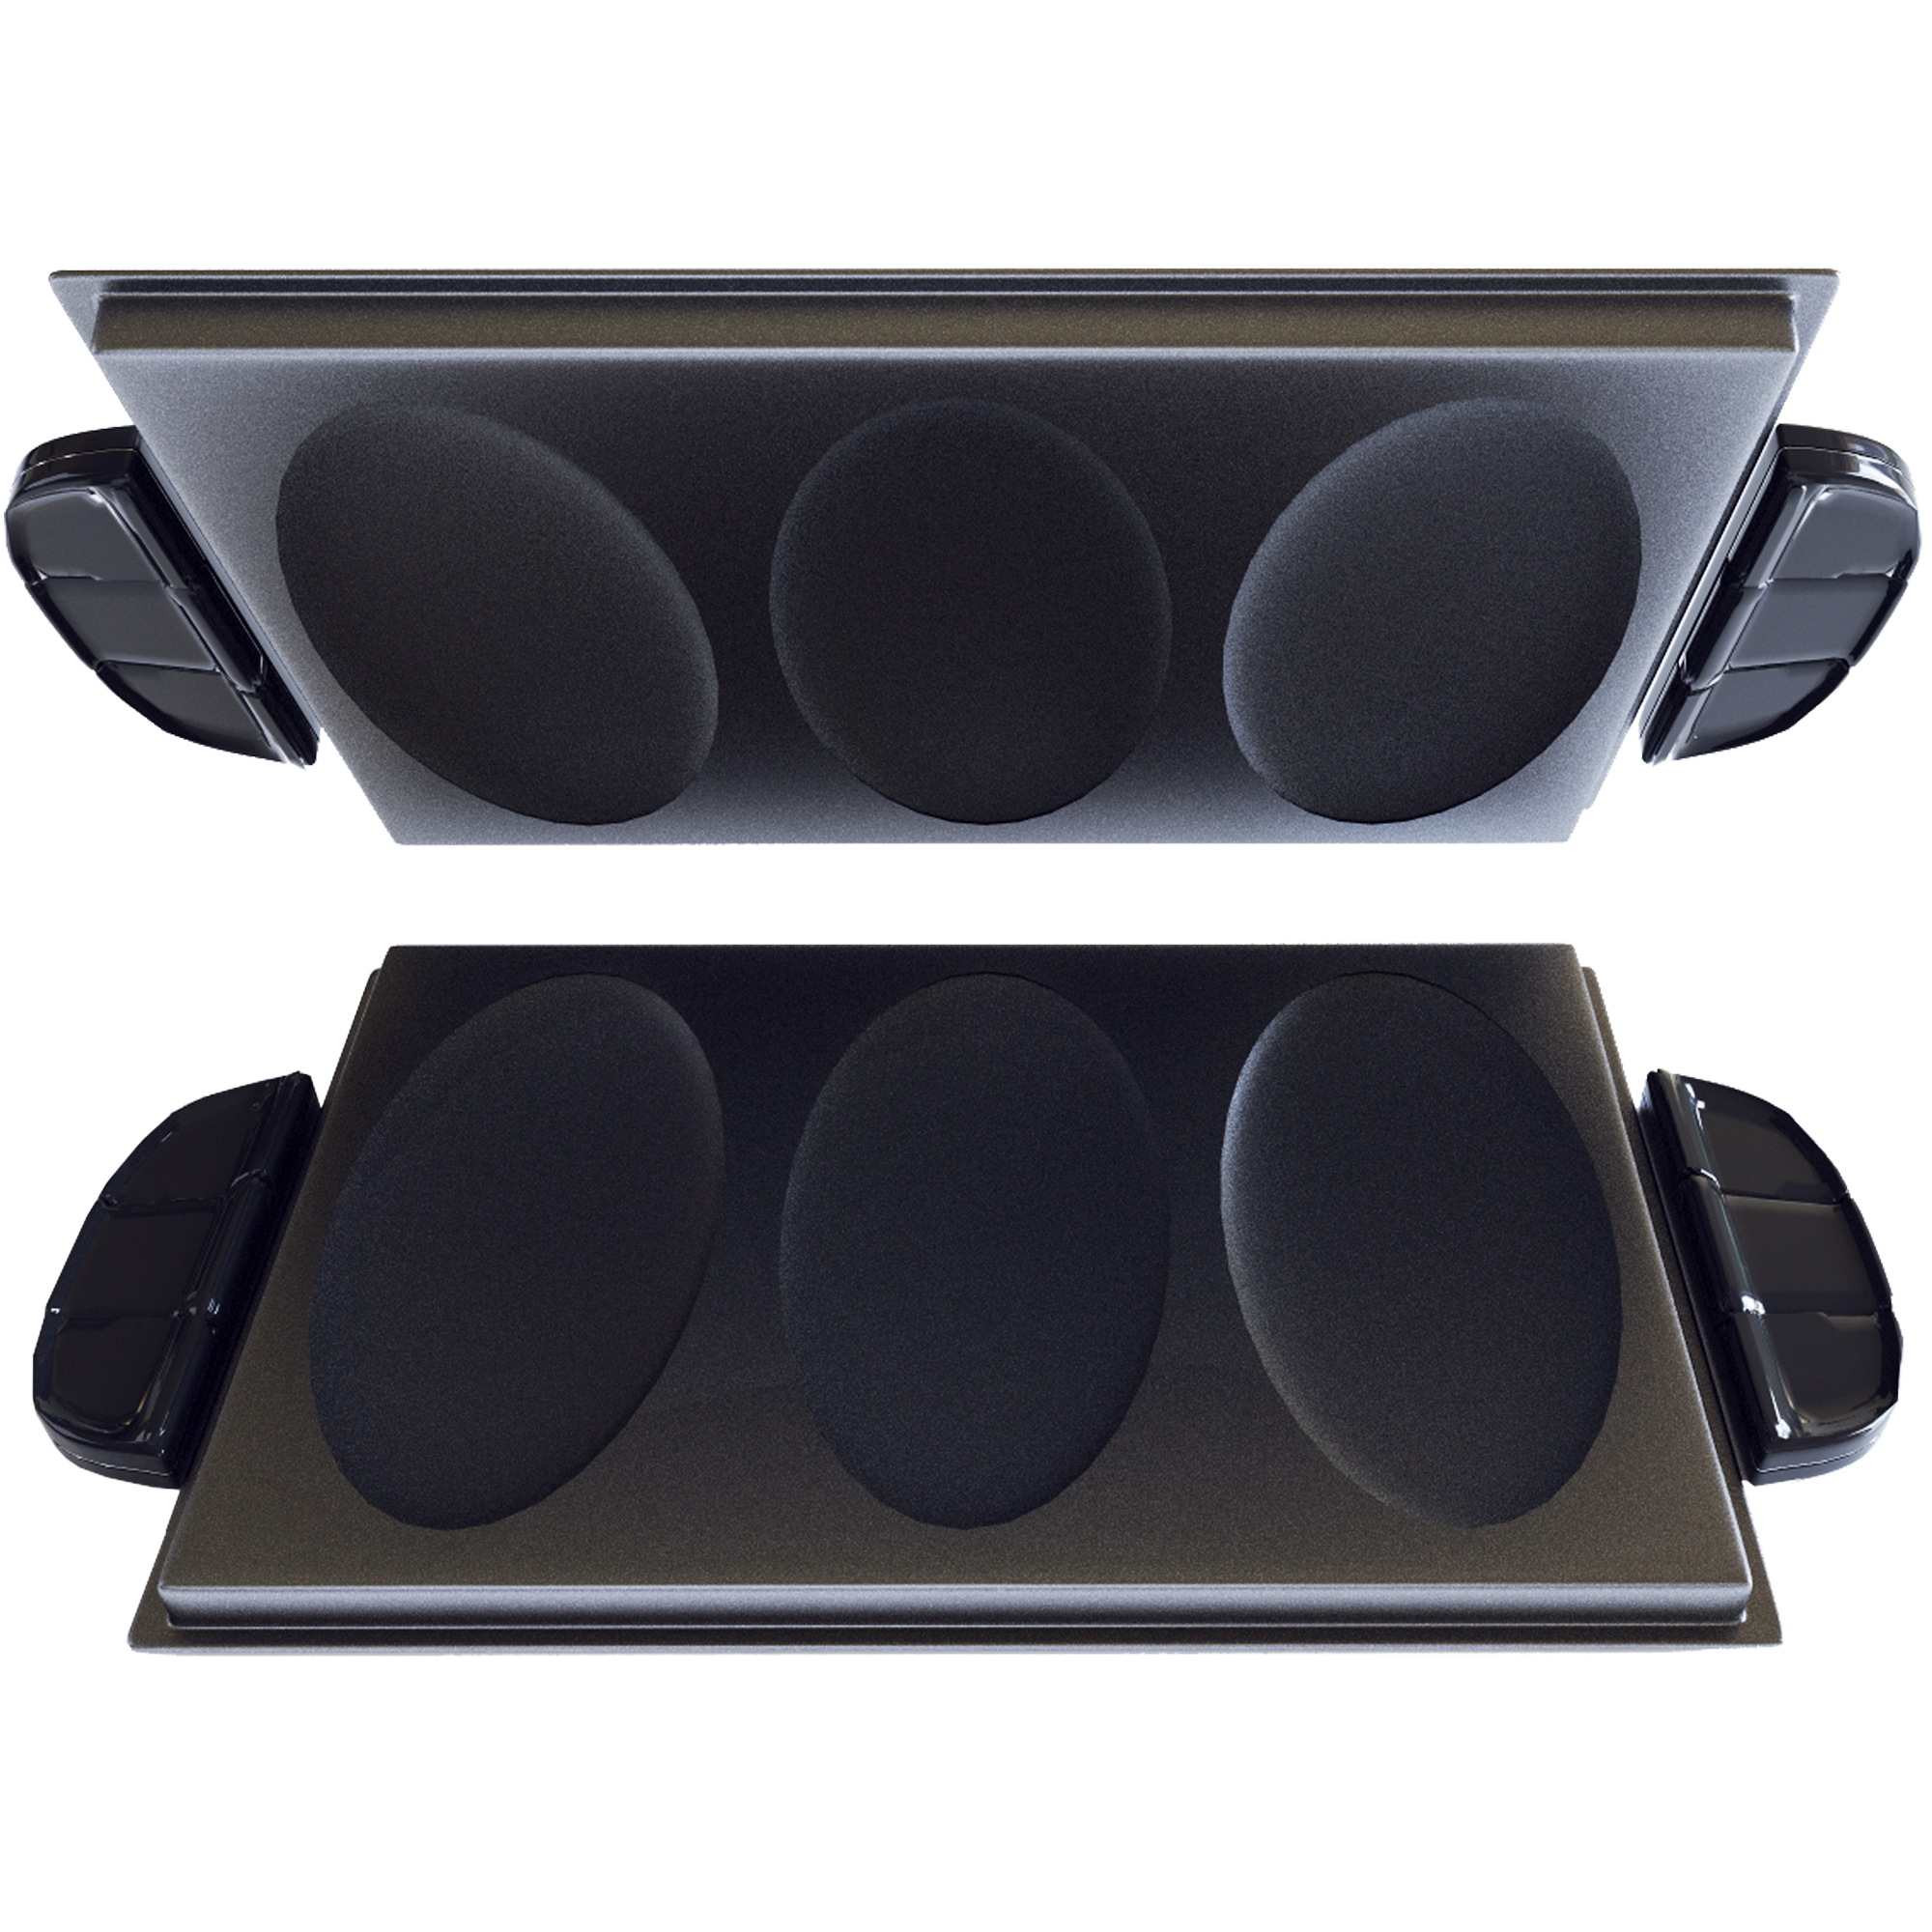 George Foreman Evolve Omelet Accessory Plates, GFP84OP